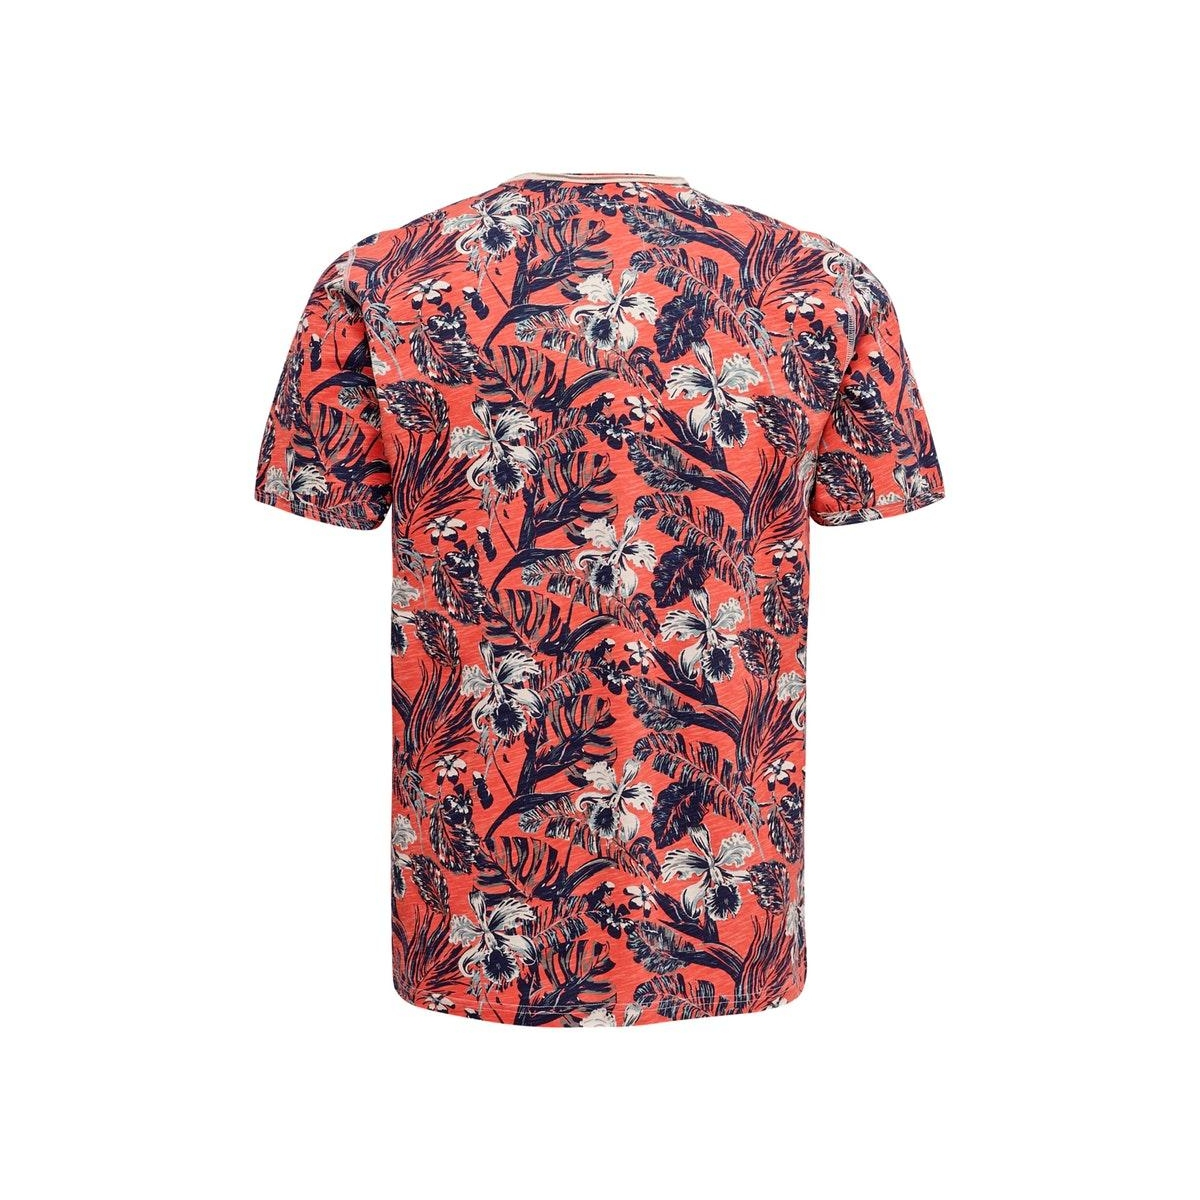 onscan life slimraw edge aop tee nf 6215 22016215 only & sons t-shirt hot coral